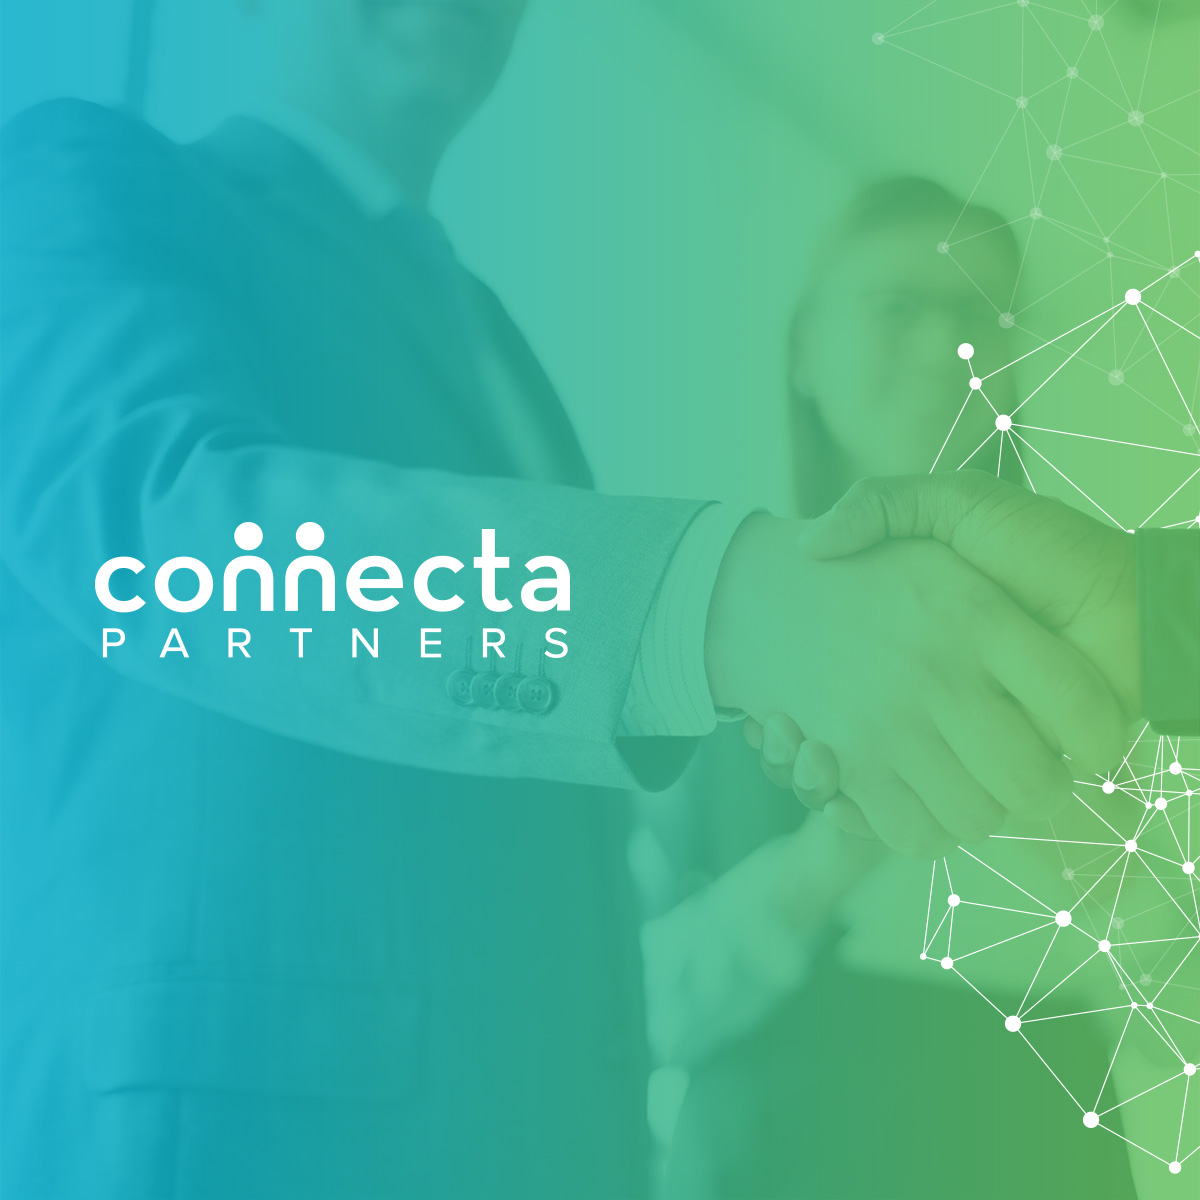 Connecta Partners